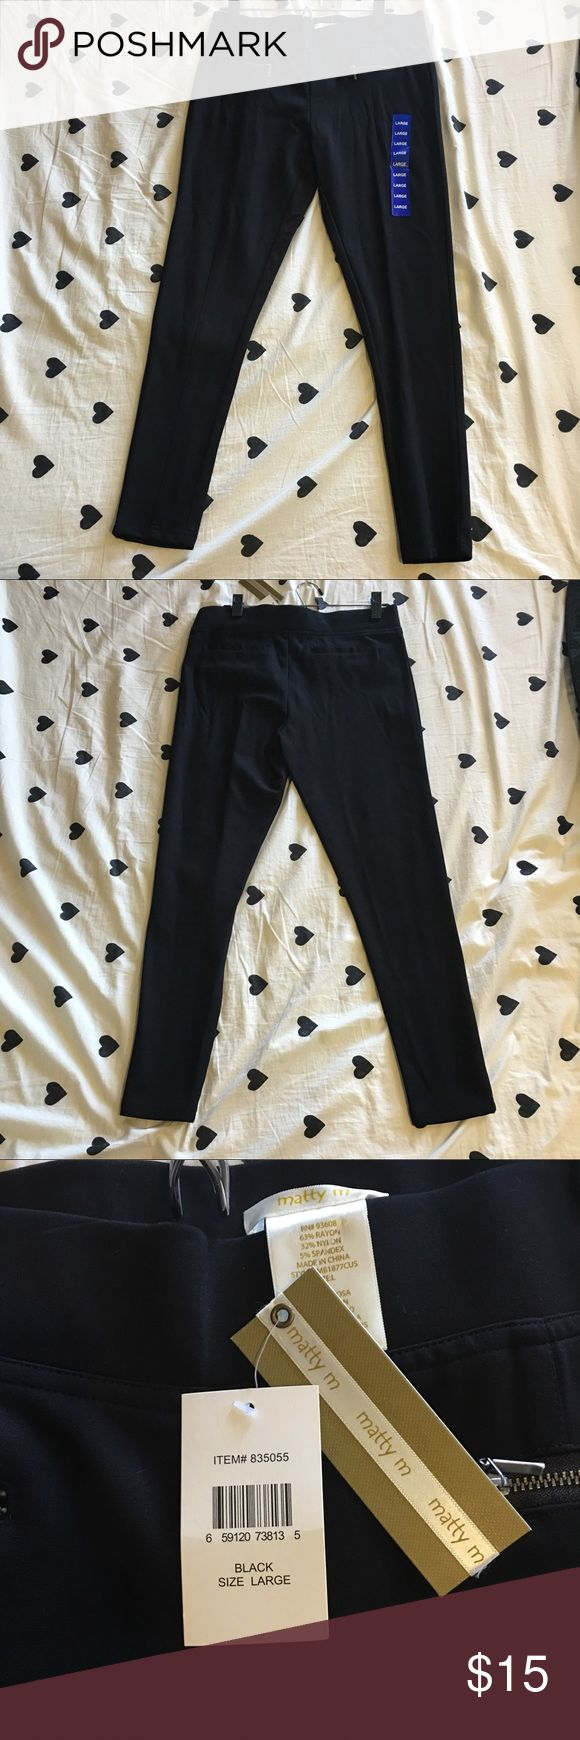 Leggings Matty M leggings. Brand new with tags! Cute zippers on front of pants. Thick legging material. Great for lounging, going out, or exercise! For reference these fit like a size 10 in Lululemon's, but are NOT Lululemon leggings. Matty M Pants Leggings